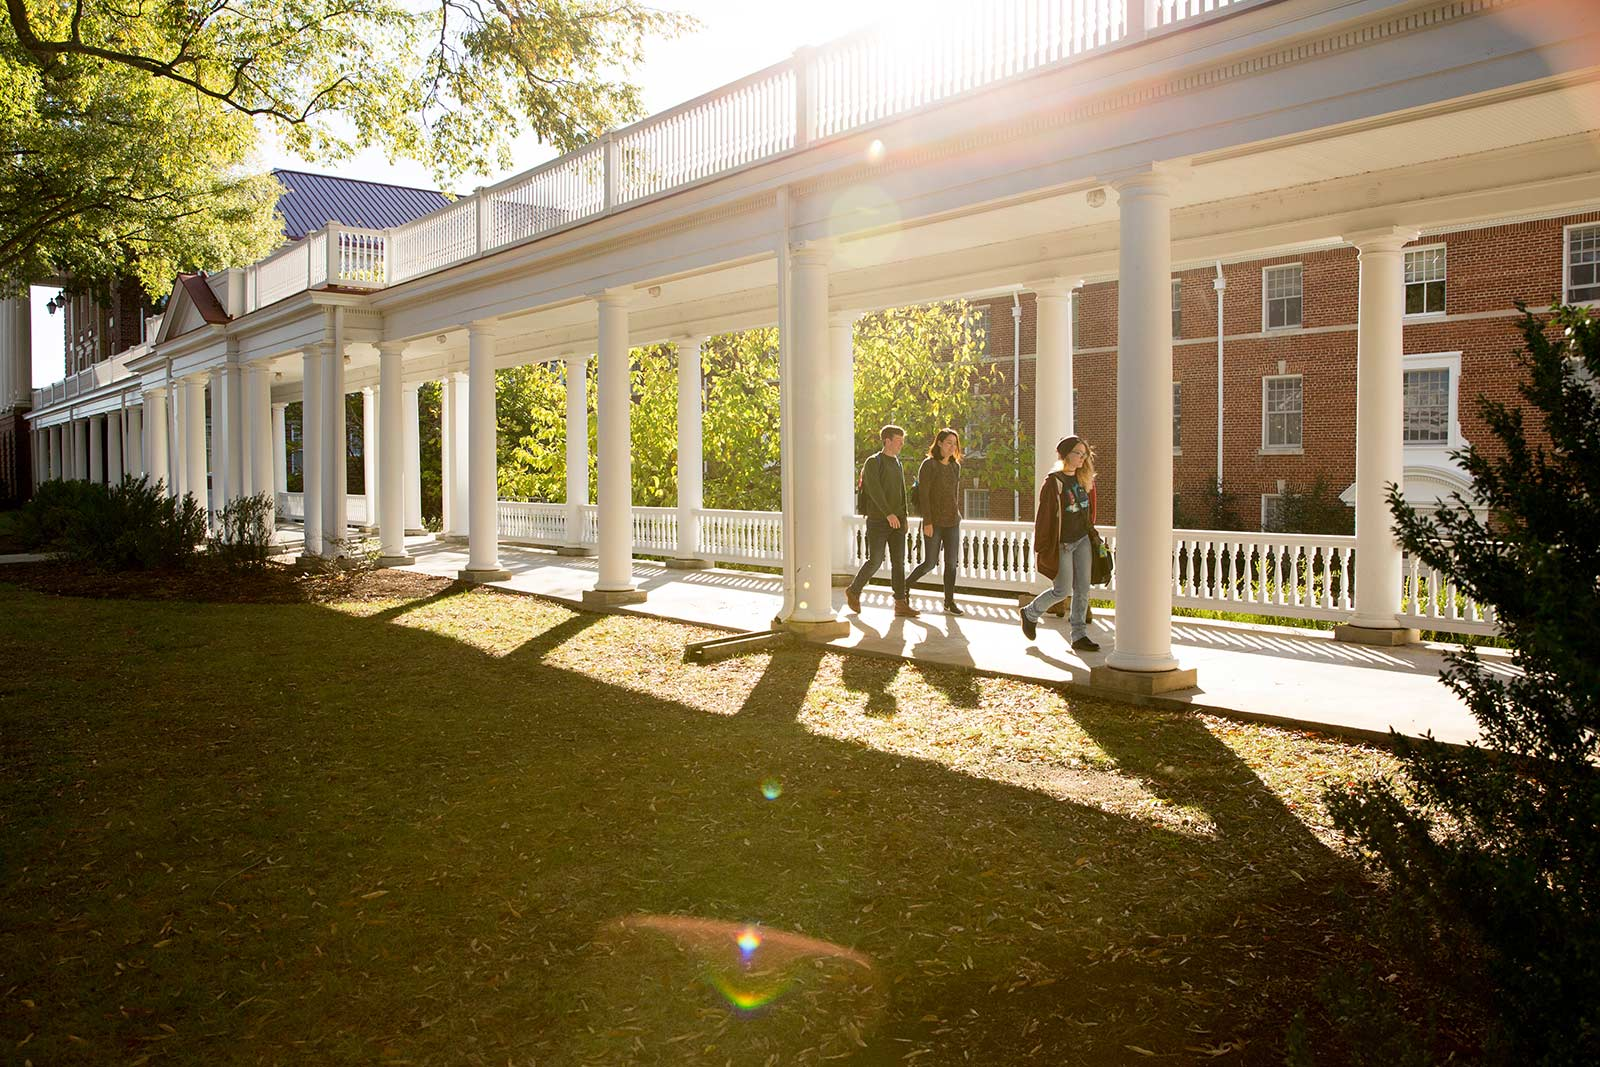 When the light is just right, walking to class is like walking through nearly 200 years of history. The Colonnades hold a special place on campus—the traditional spot for iconic graduation photos and, shhhhhh, the start of CHI walks.